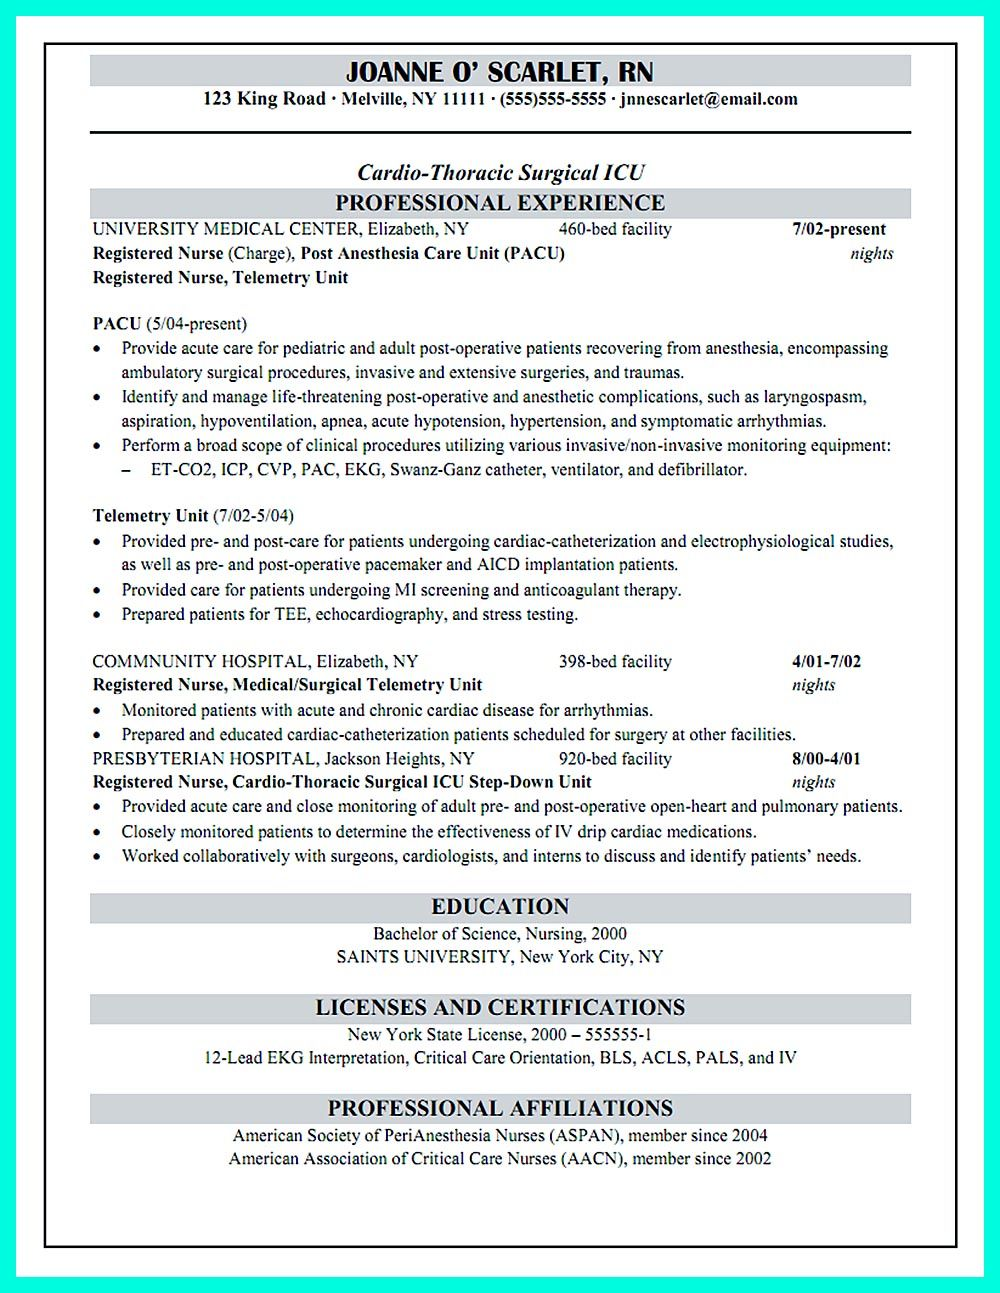 Graduate Nurse Resume Critical Care Nurse Resume Has Skills Or Objectives That Are